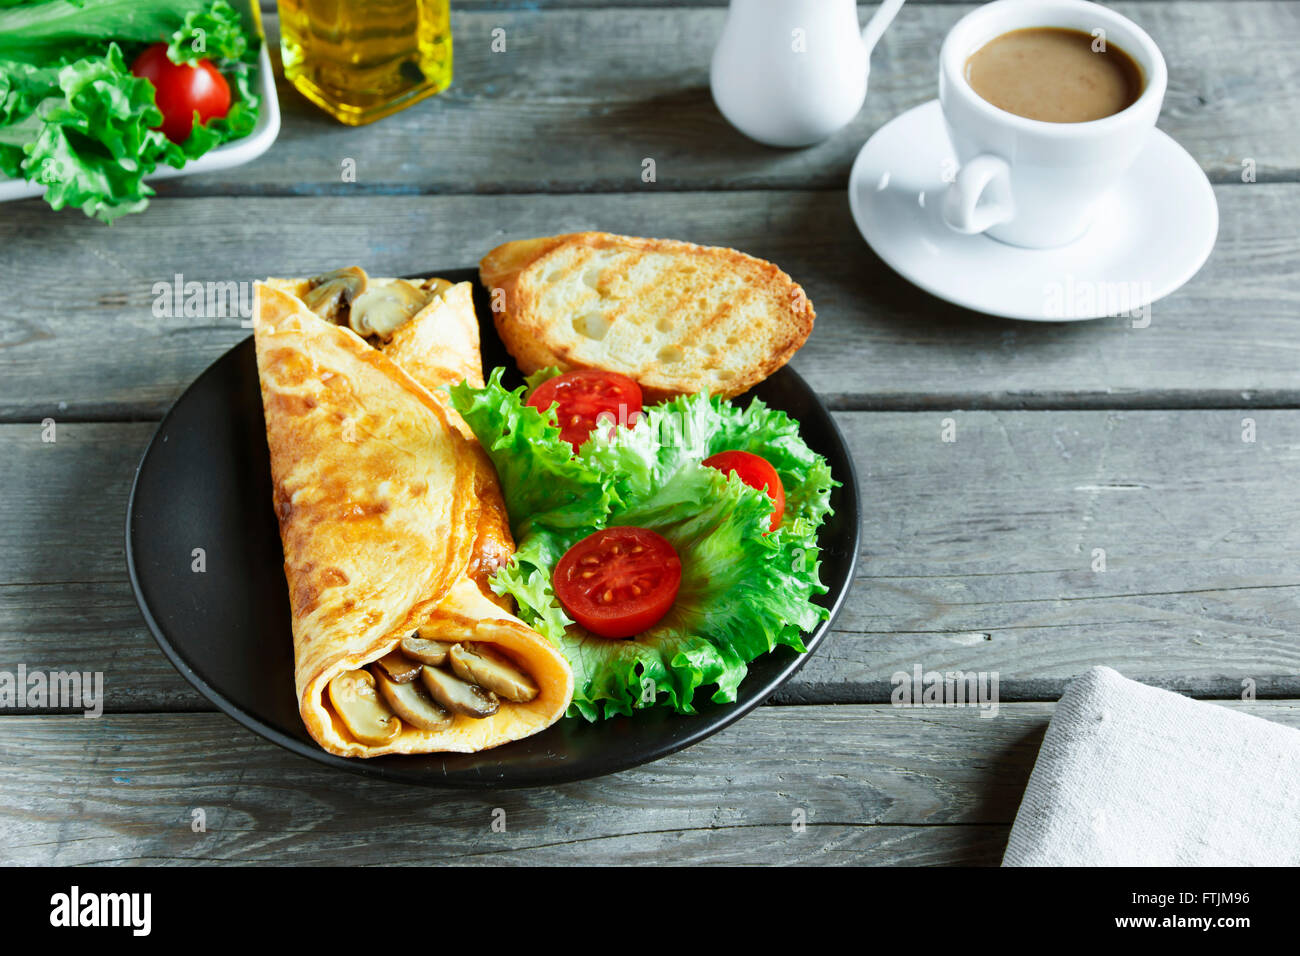 omelet with mushrooms on a plate with salad and tomato - Stock Image